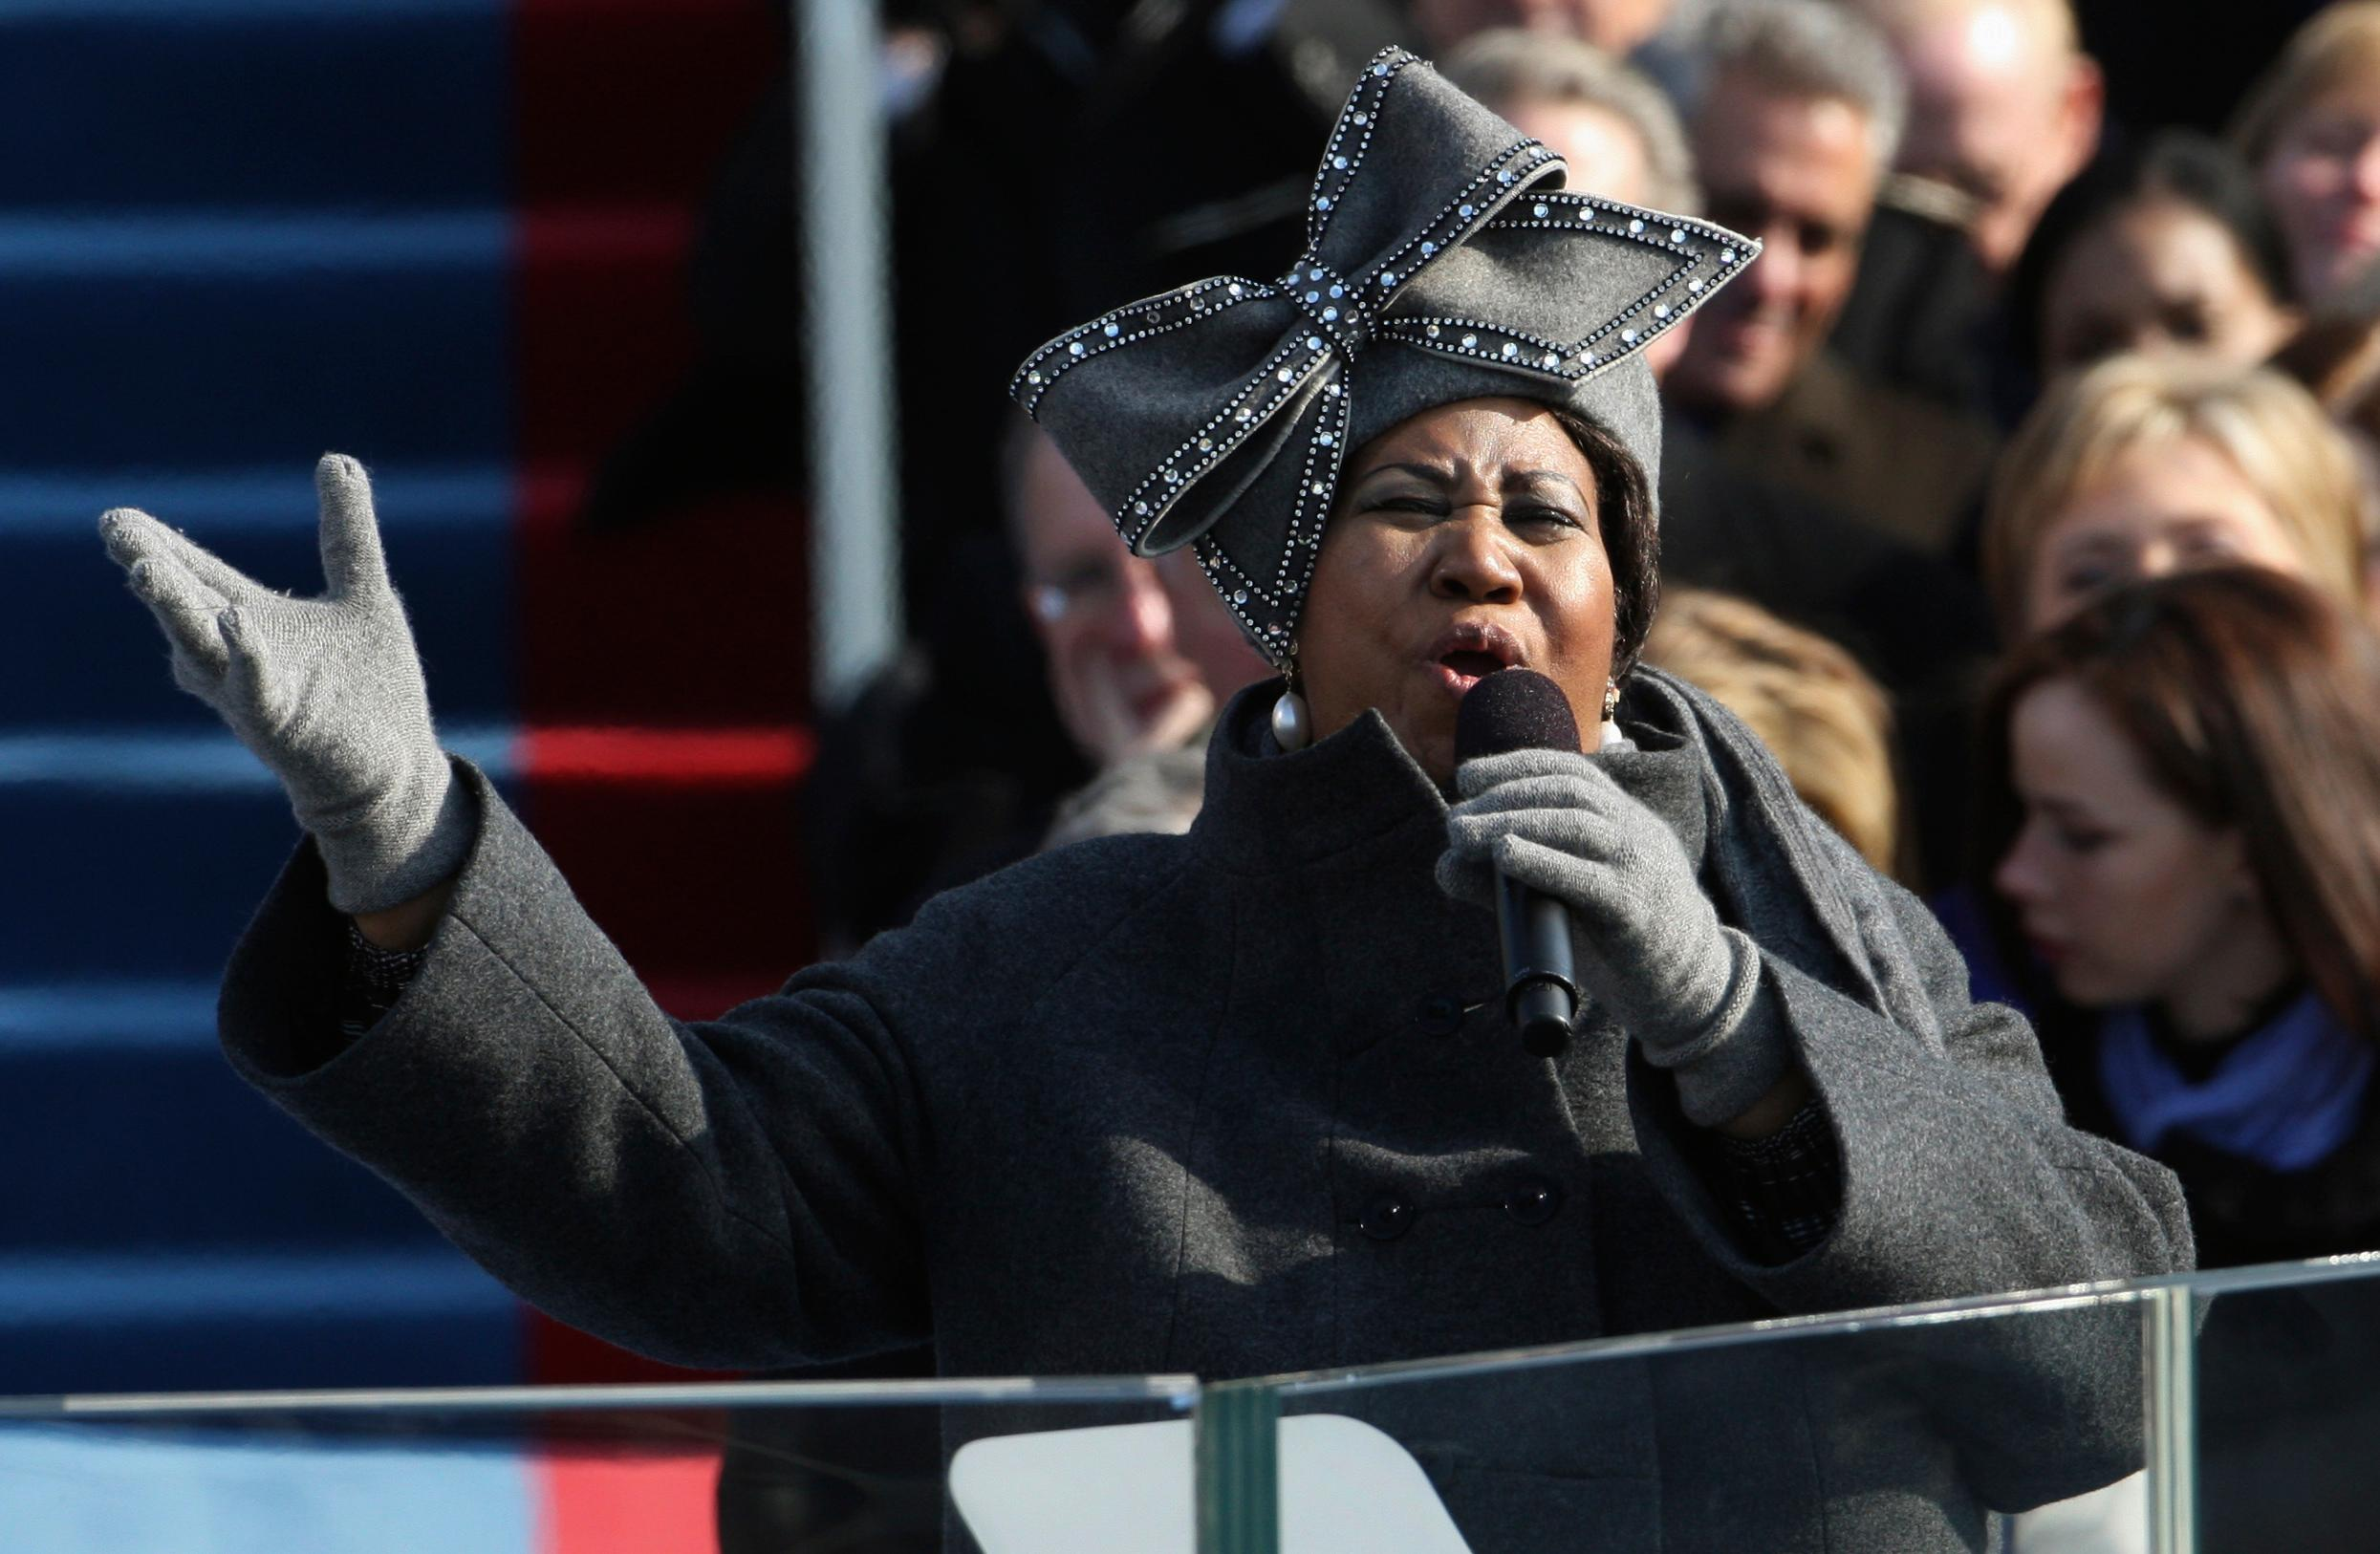 "FILE - In this Jan. 20, 2009 file photo, Aretha Franklin performs at the inauguration for President Barack Obama at the U.S. Capitol in Washington. Franklin died Thursday, Aug. 16, 2018, at her home in Detroit. She was 76. Throughout Aretha Franklin's career, ""The Queen of Soul"" often returned to Washington - the nation's capital - for performances that at times put her in line with key moments of U.S. History. (AP Photo/Ron Edmonds, File)"